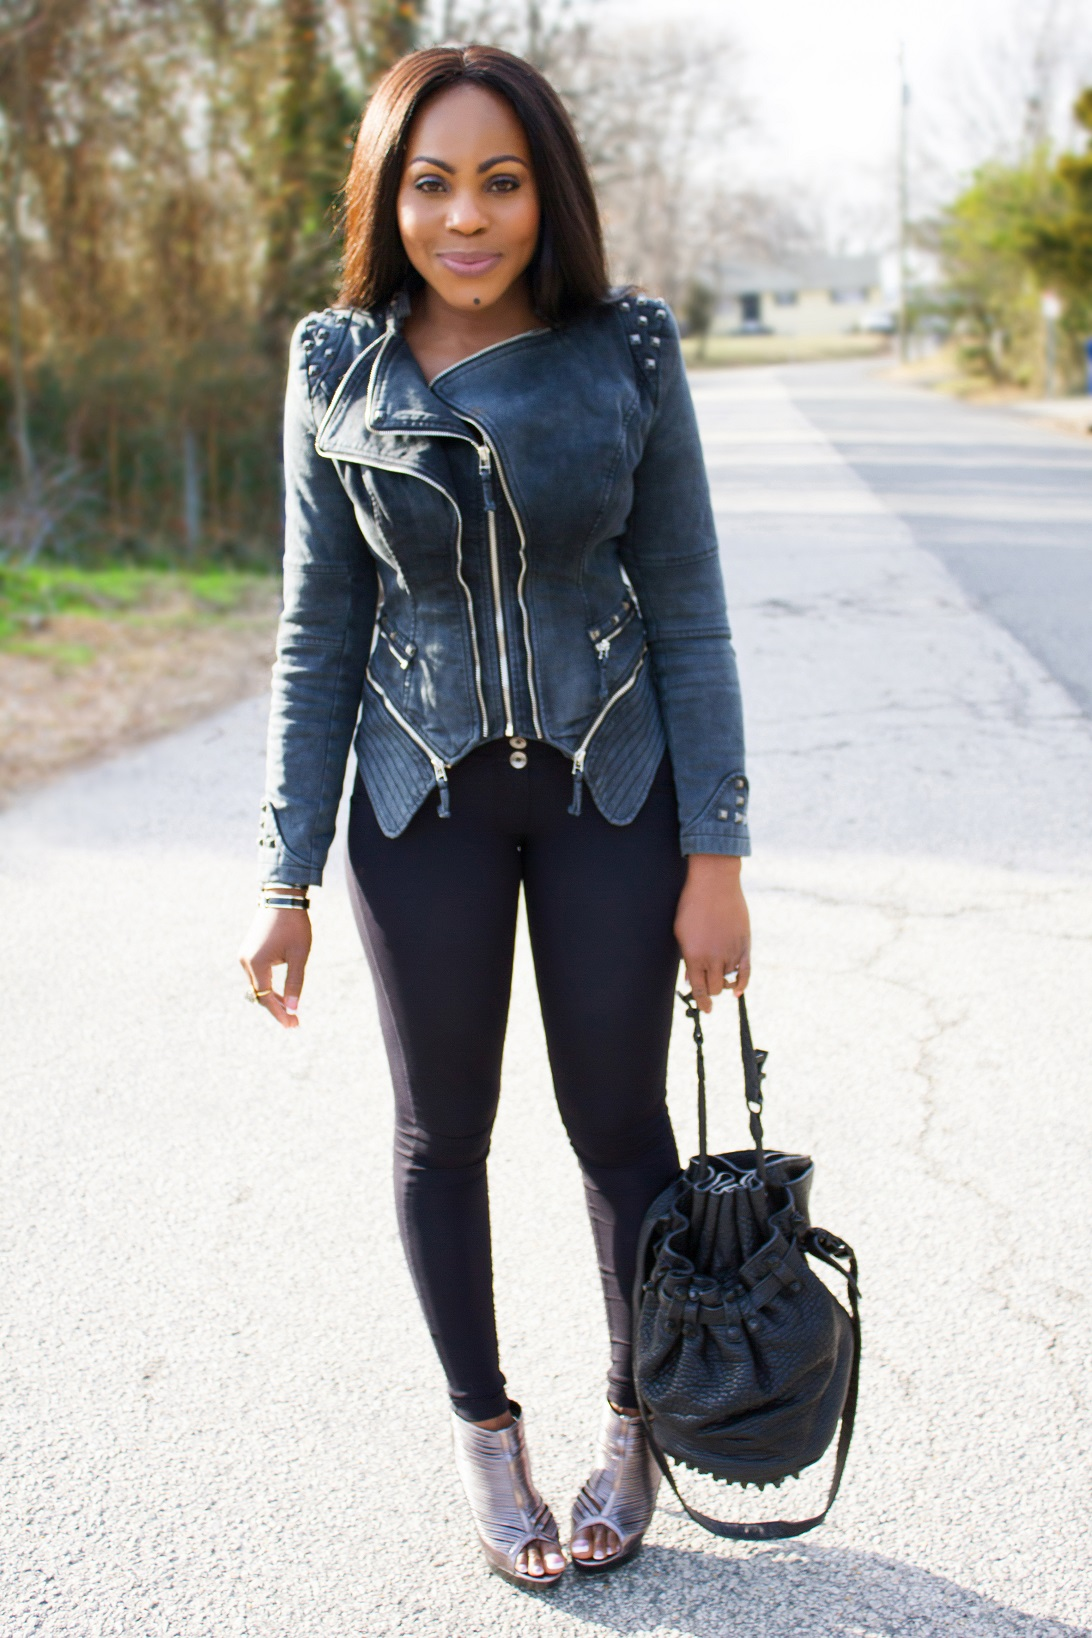 freddy wrup pants review with studded denim jackets. Black Bedroom Furniture Sets. Home Design Ideas